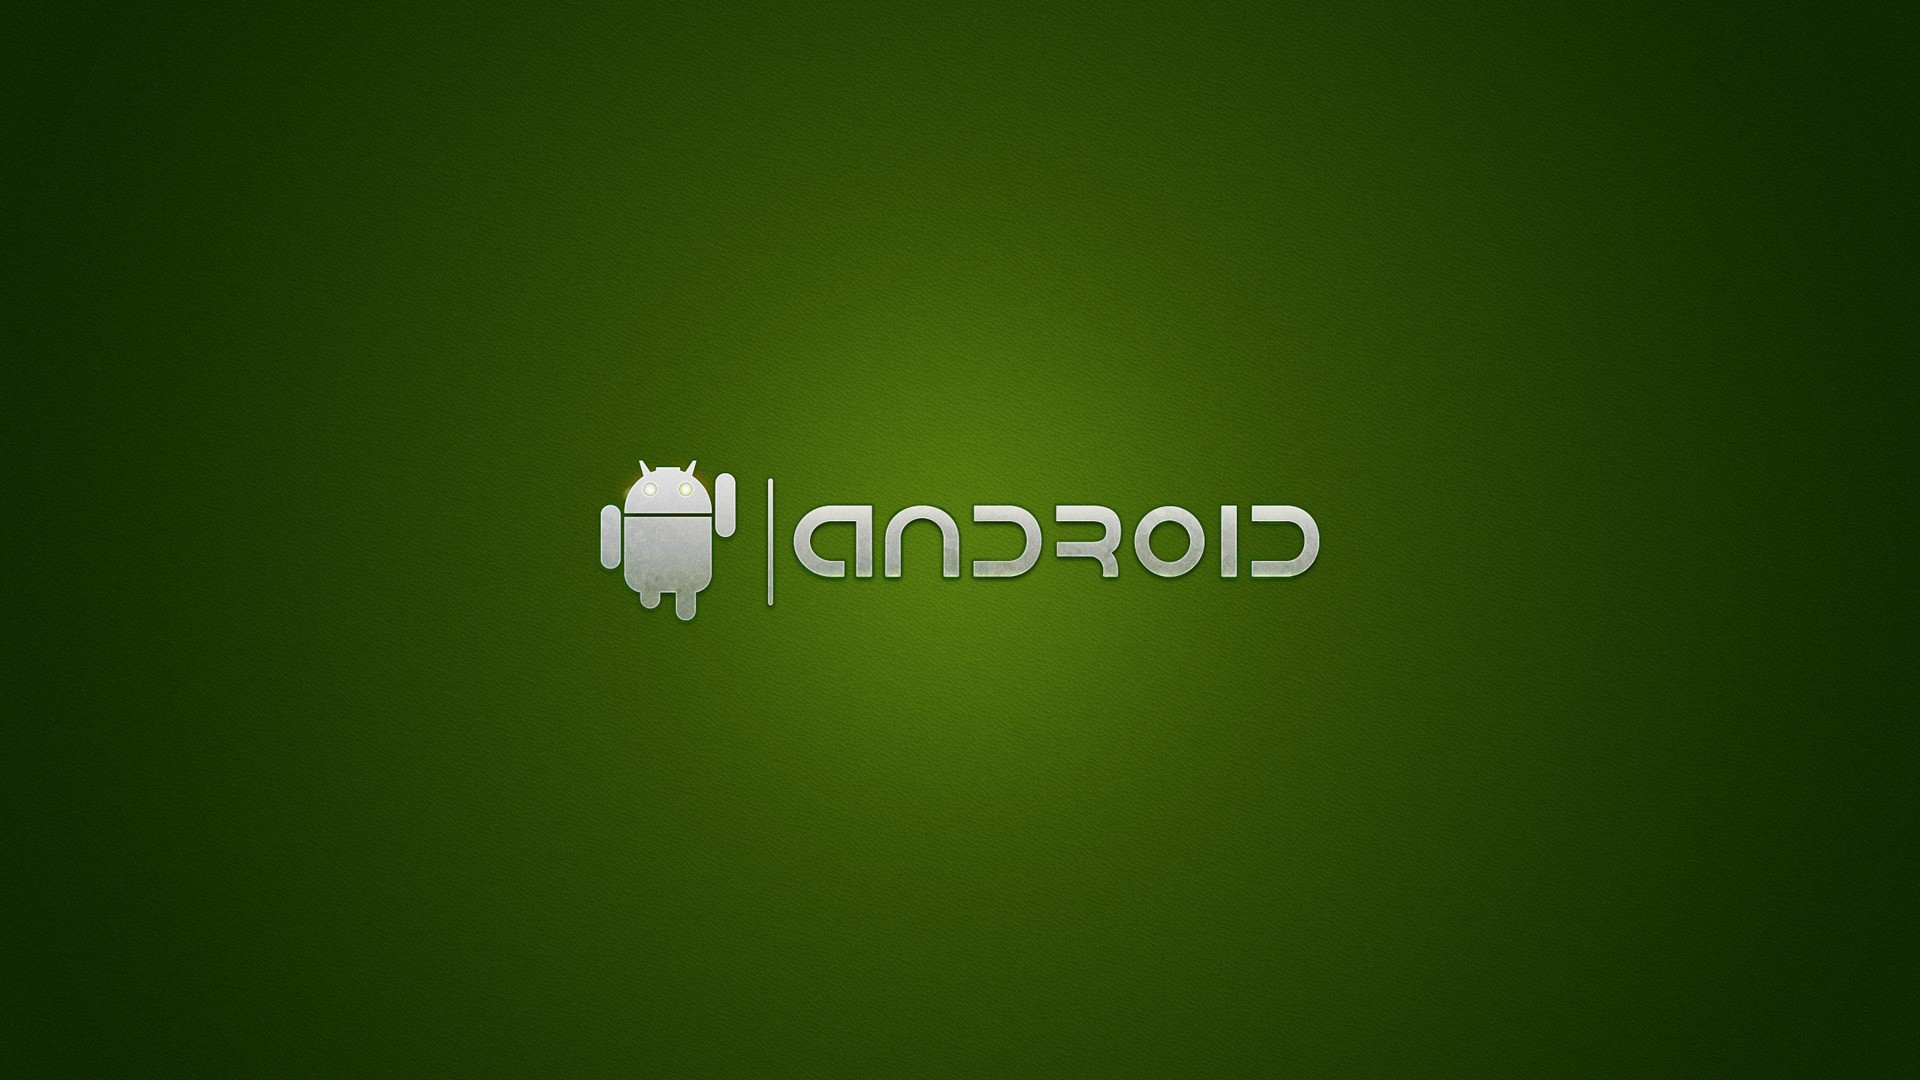 1920x1080 Android Developer Placement Feedback. Hd Phone WallpapersHd ...